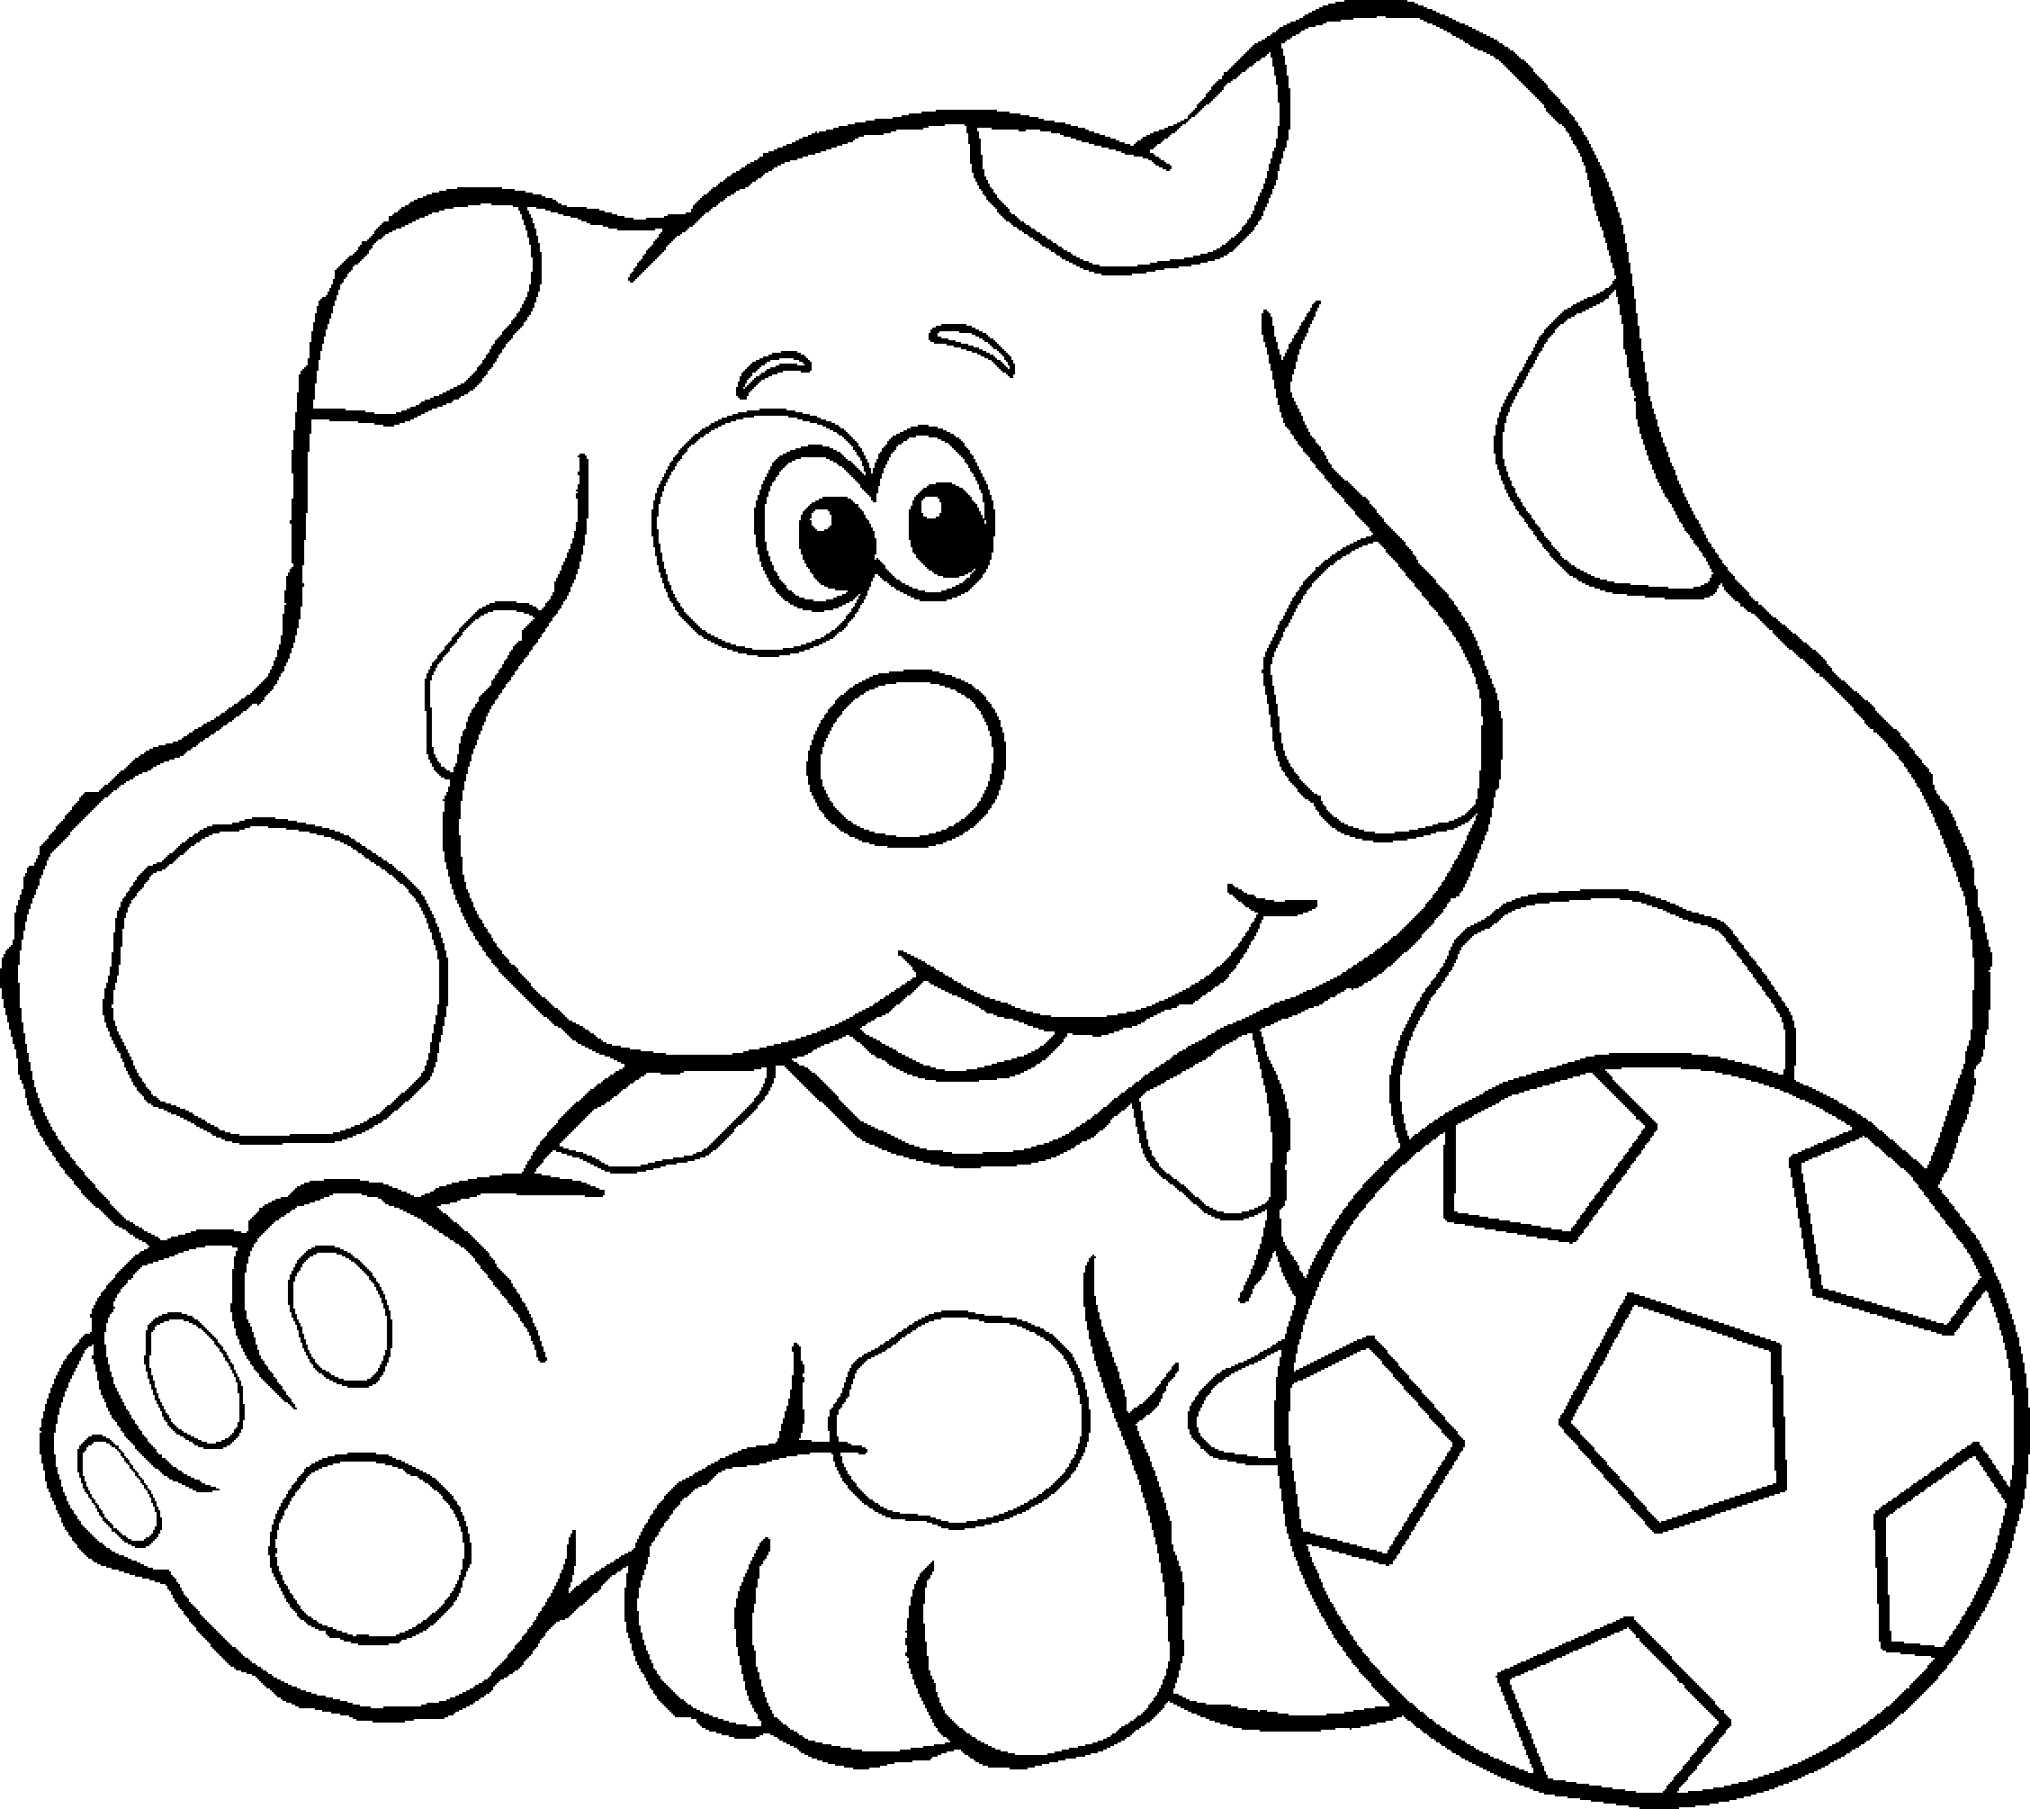 blues-clues coloring pages for kids,printable,coloring pages